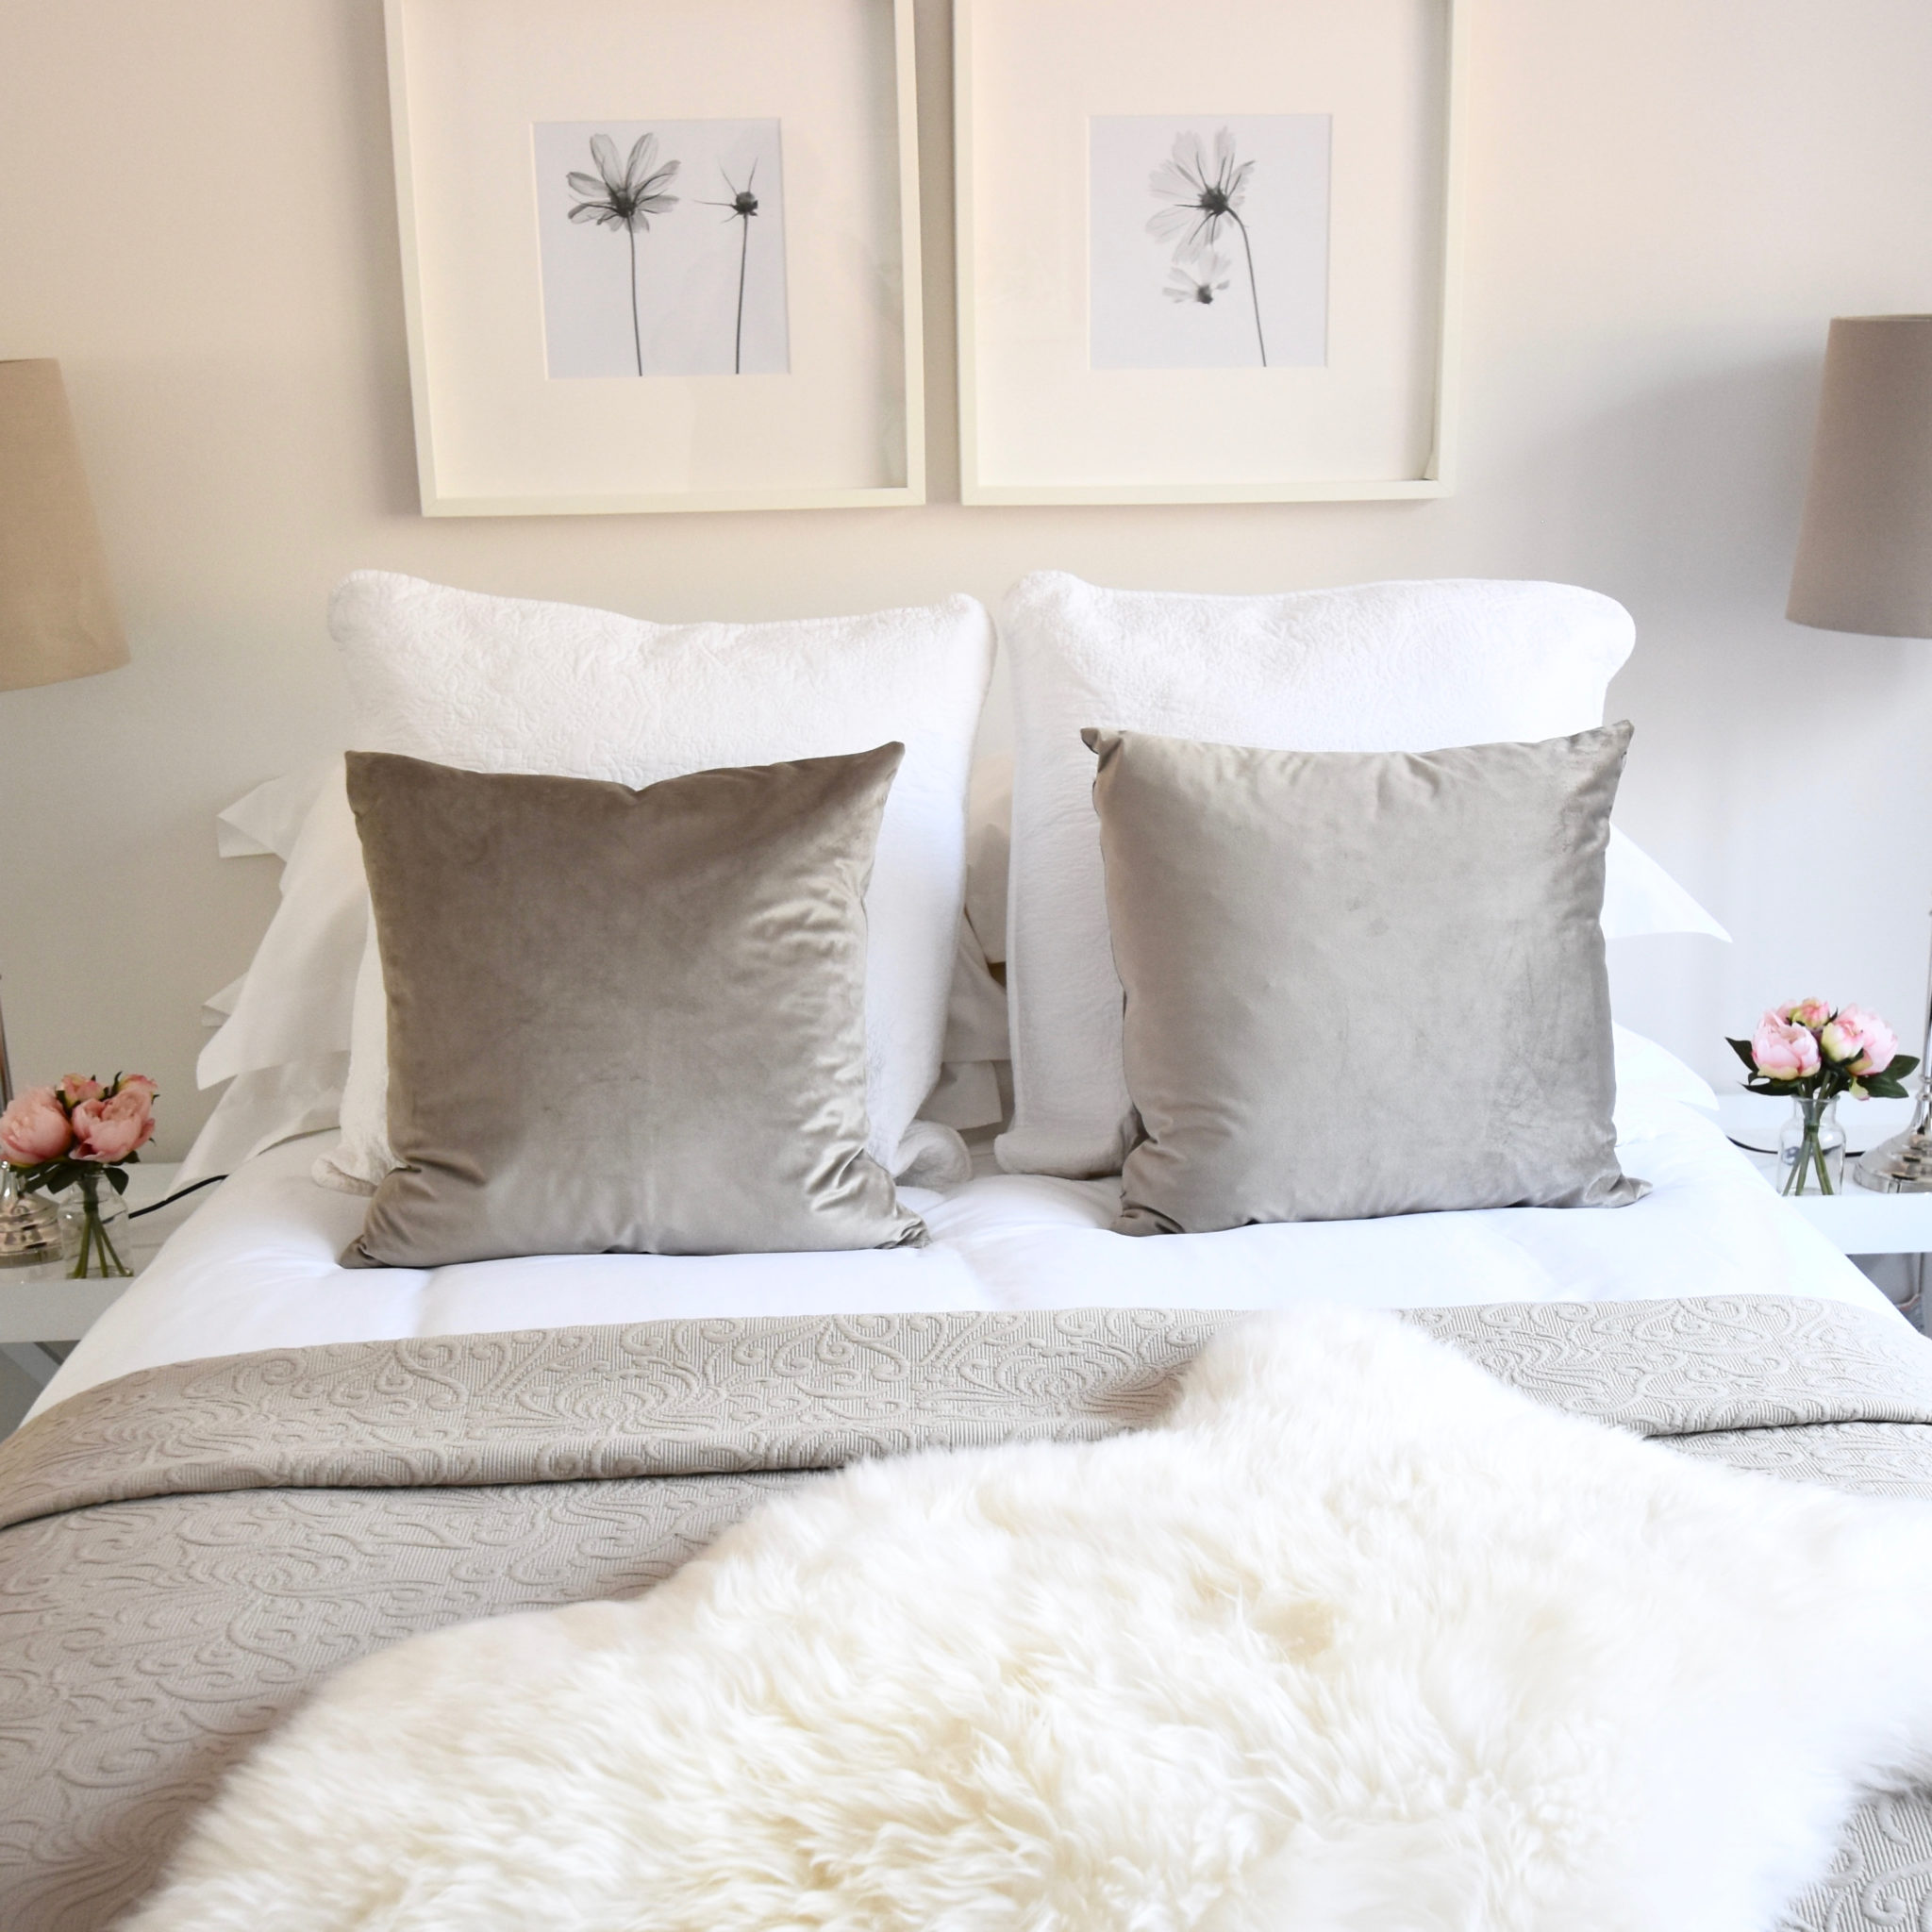 Surry house bed and cushions